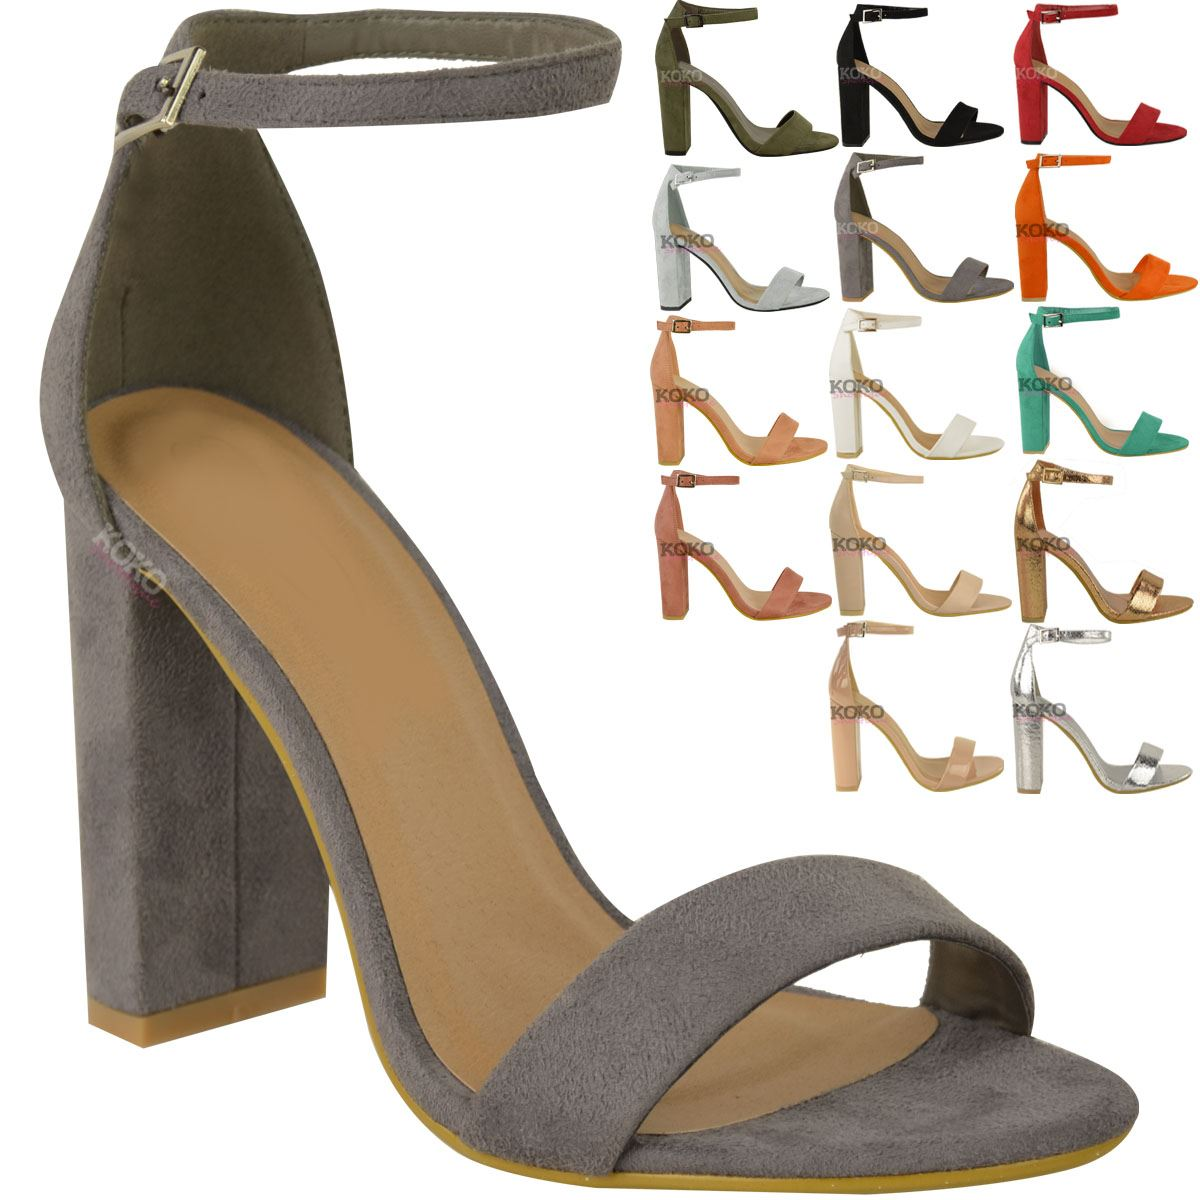 Womens-Ladies-Block-High-Heels-Ankle-Strap-Sexy-Open-Toe-Sandals-Shoes-Size-New